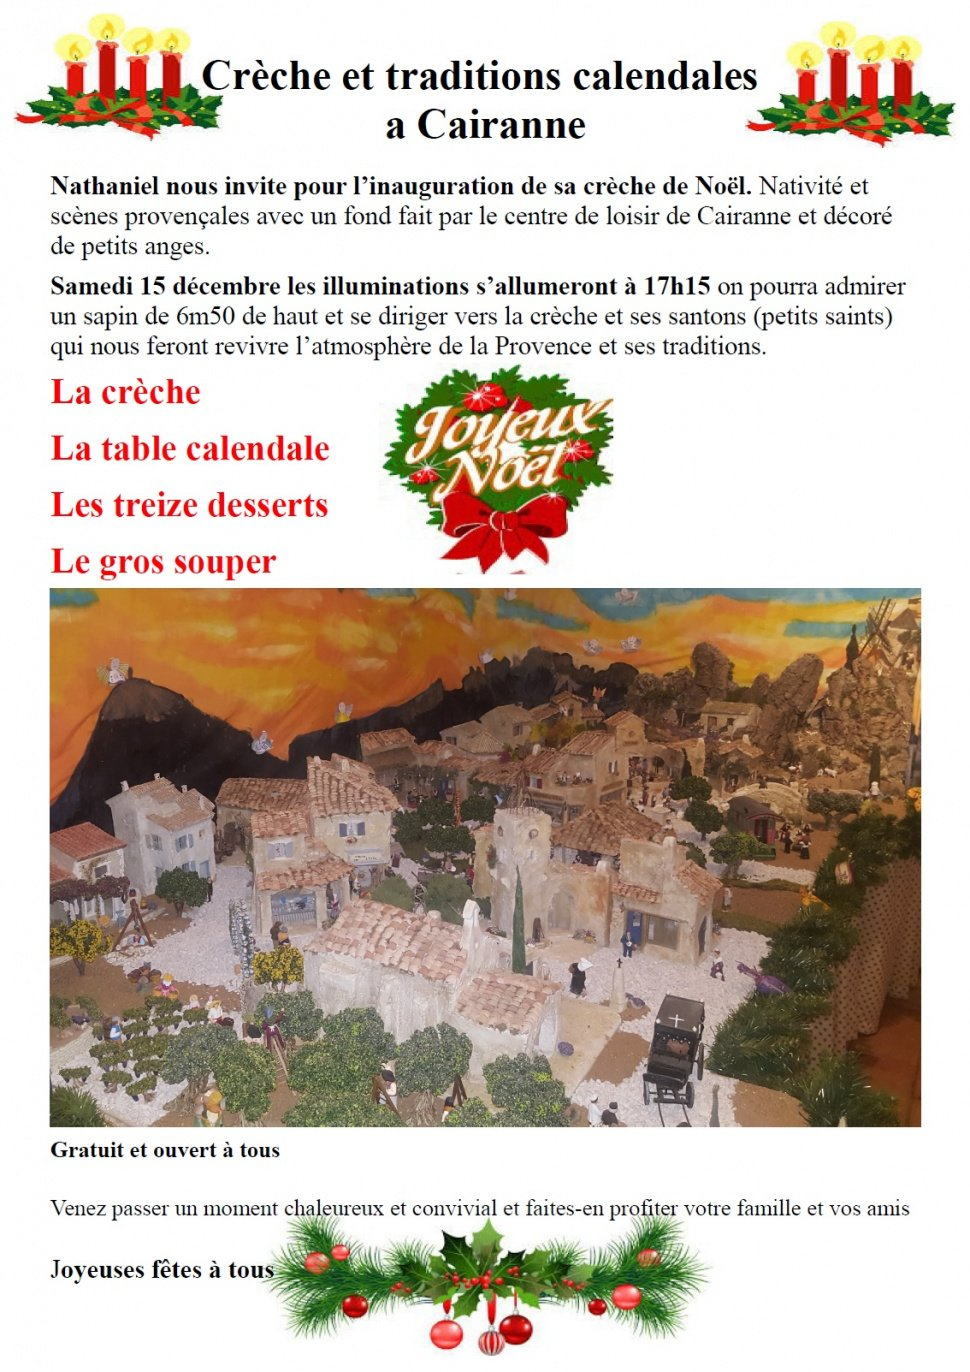 Traditions calendales à Cairanne